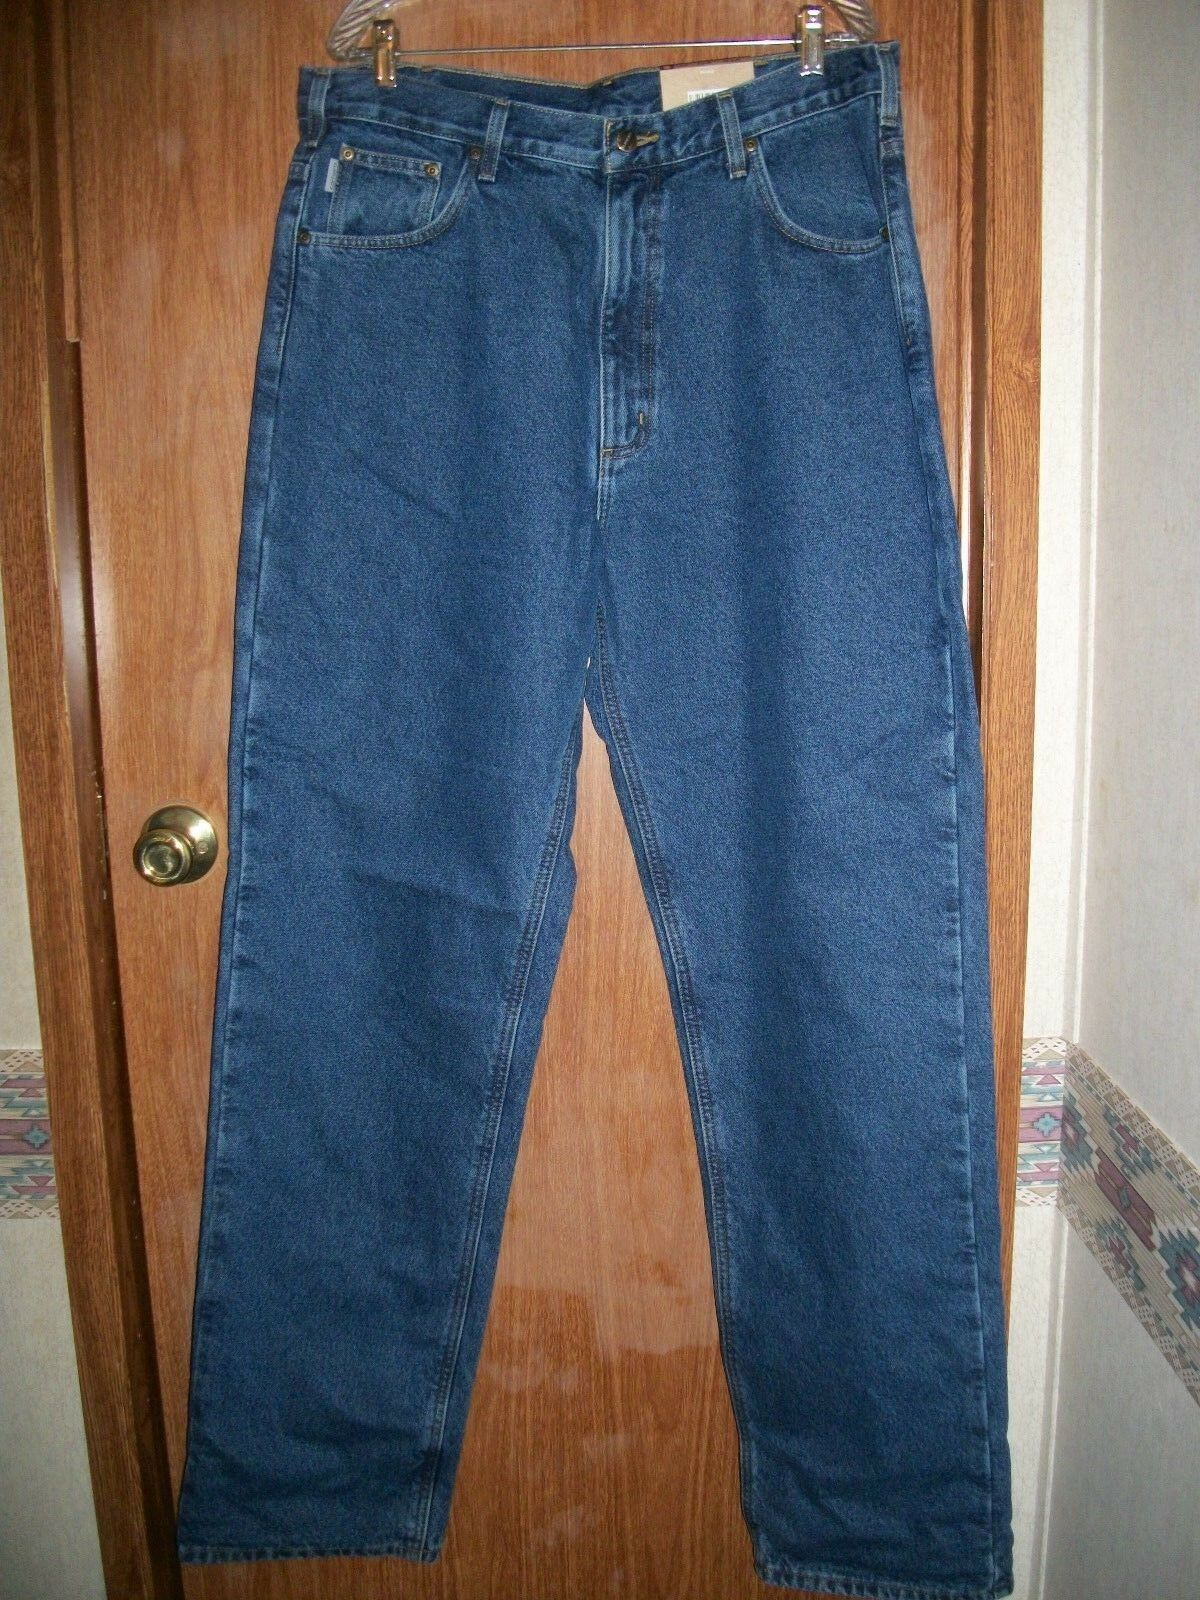 NWT CARHARTT blueE FLANNEL LINED STRAIGHT LEG JEANS SIZE 38 X 36 TALL SIZE